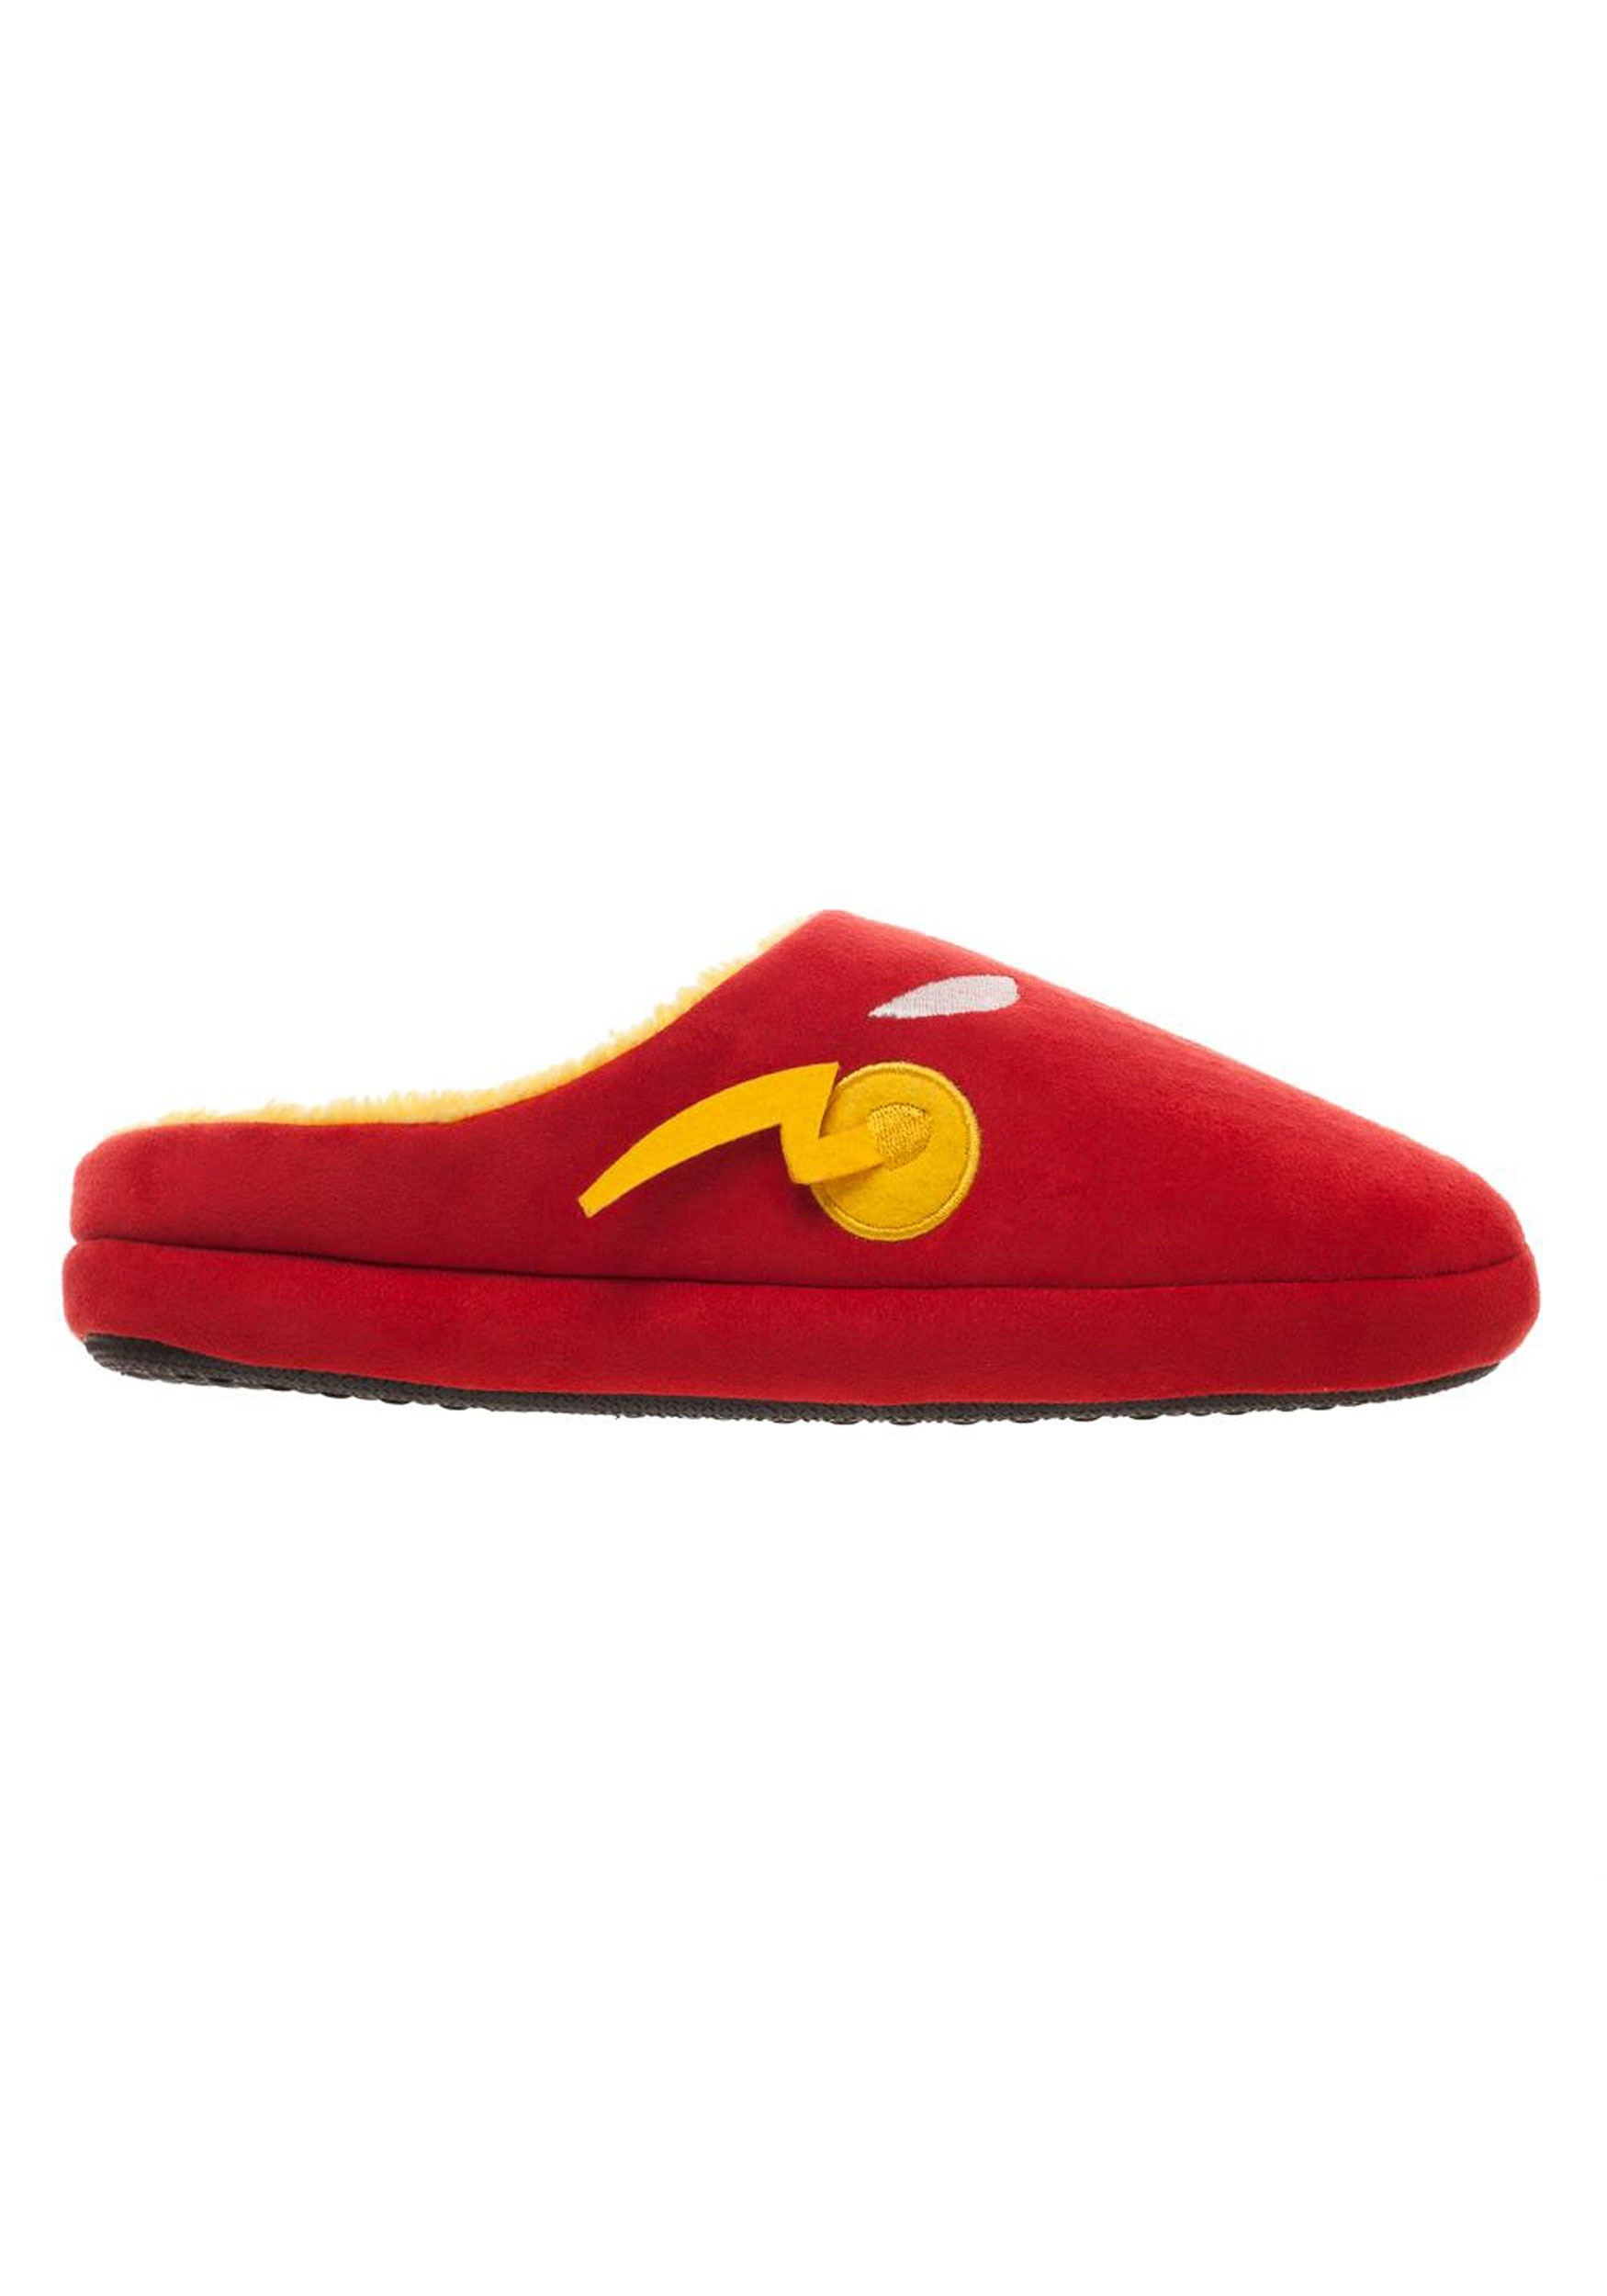 The Flash Red Scuff Slippers for Men